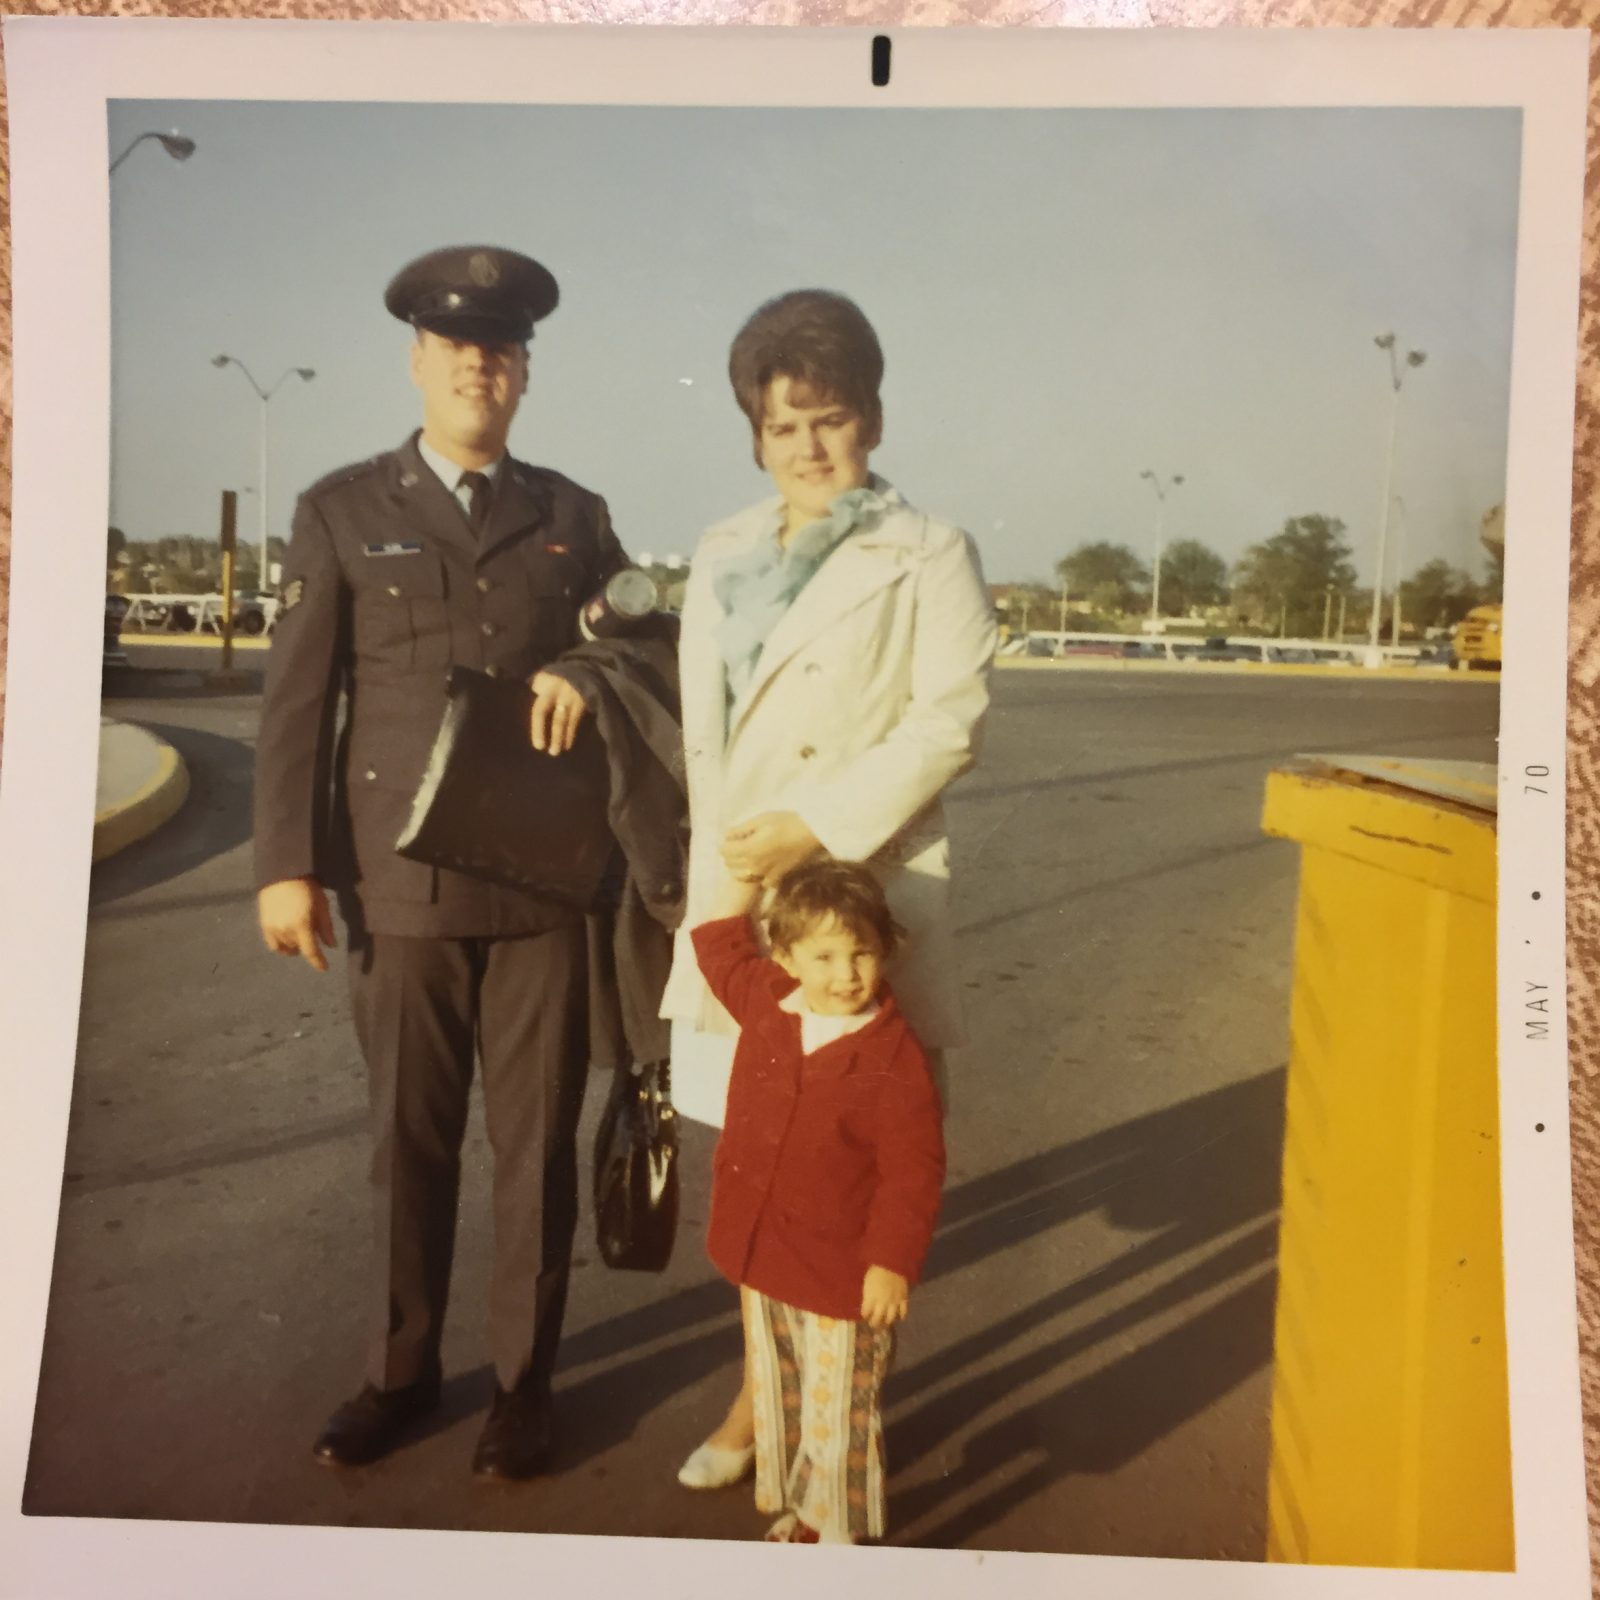 A 3-year-old Vicki with her parents.